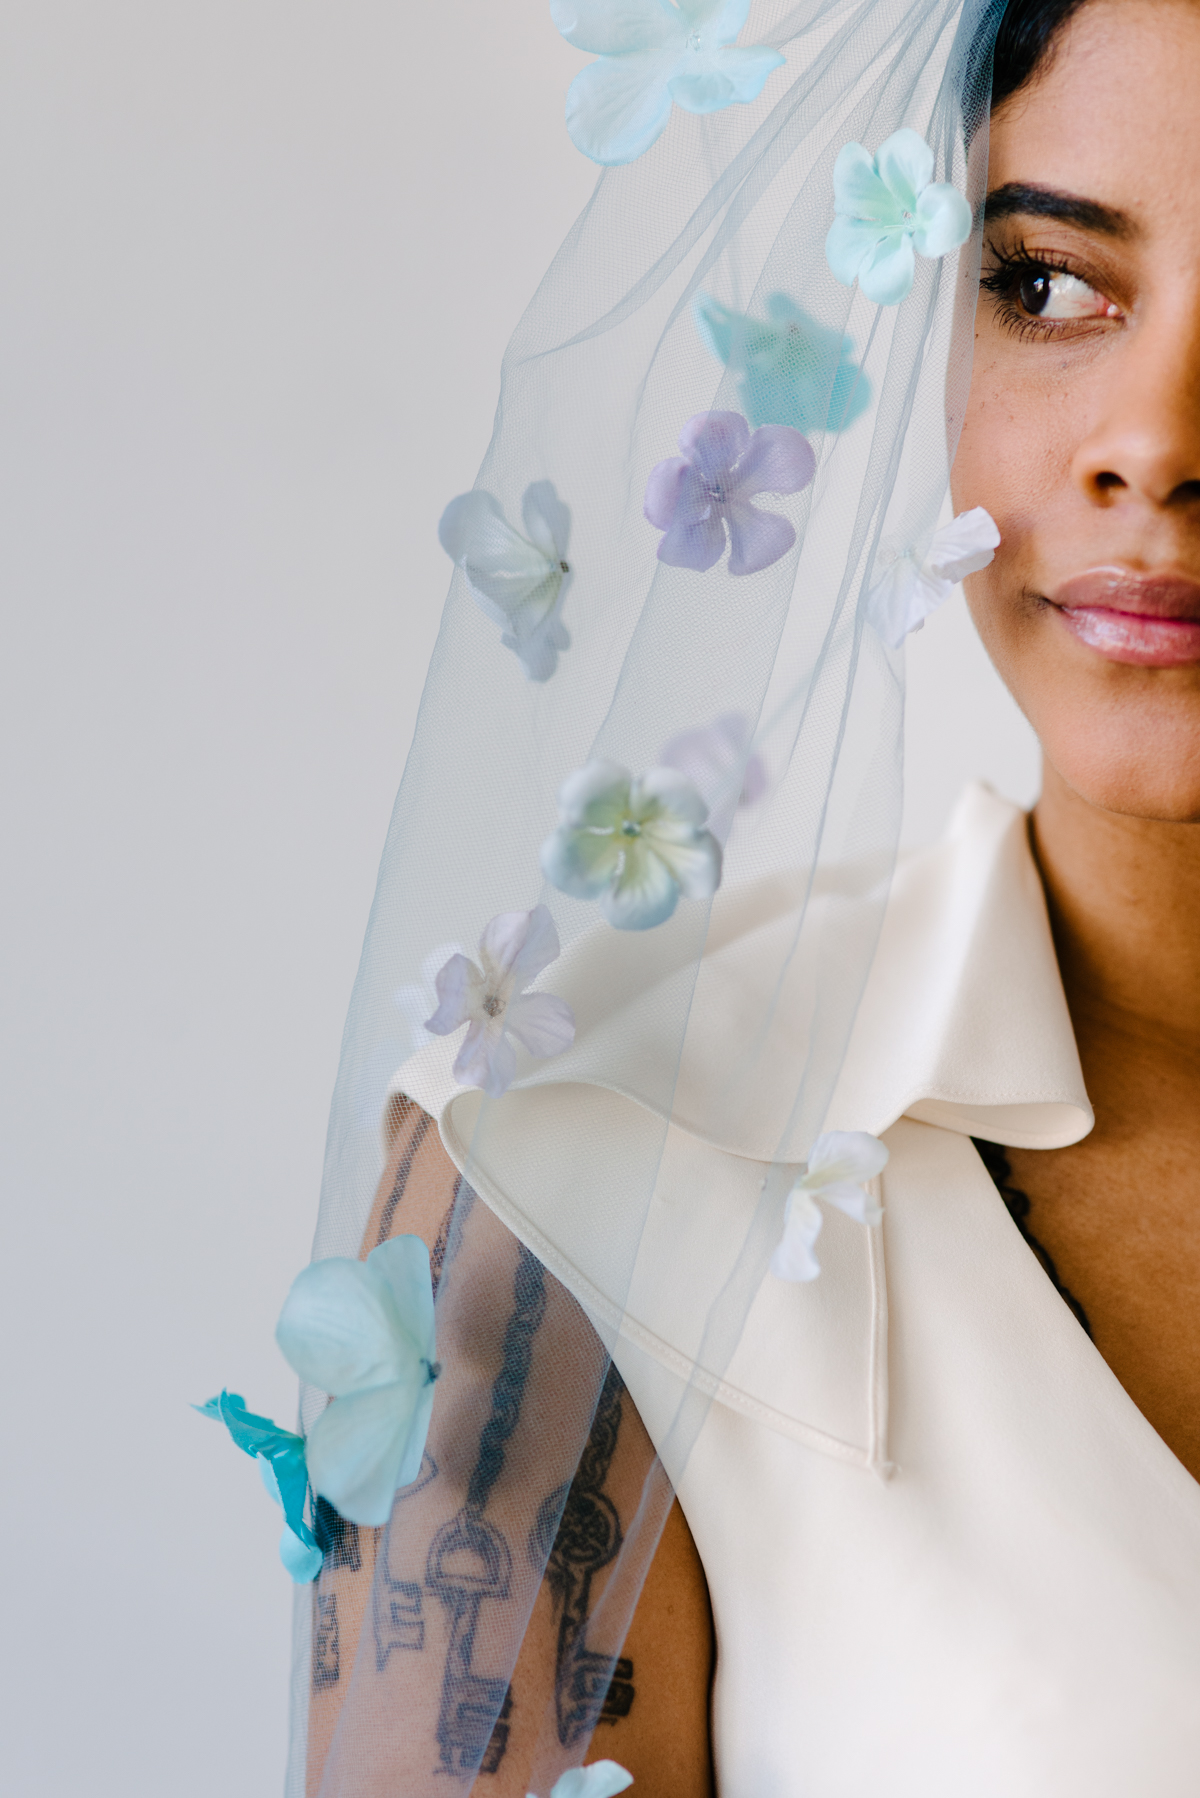 Close up of a wedding veil dyed light blue with colorful flowers attached